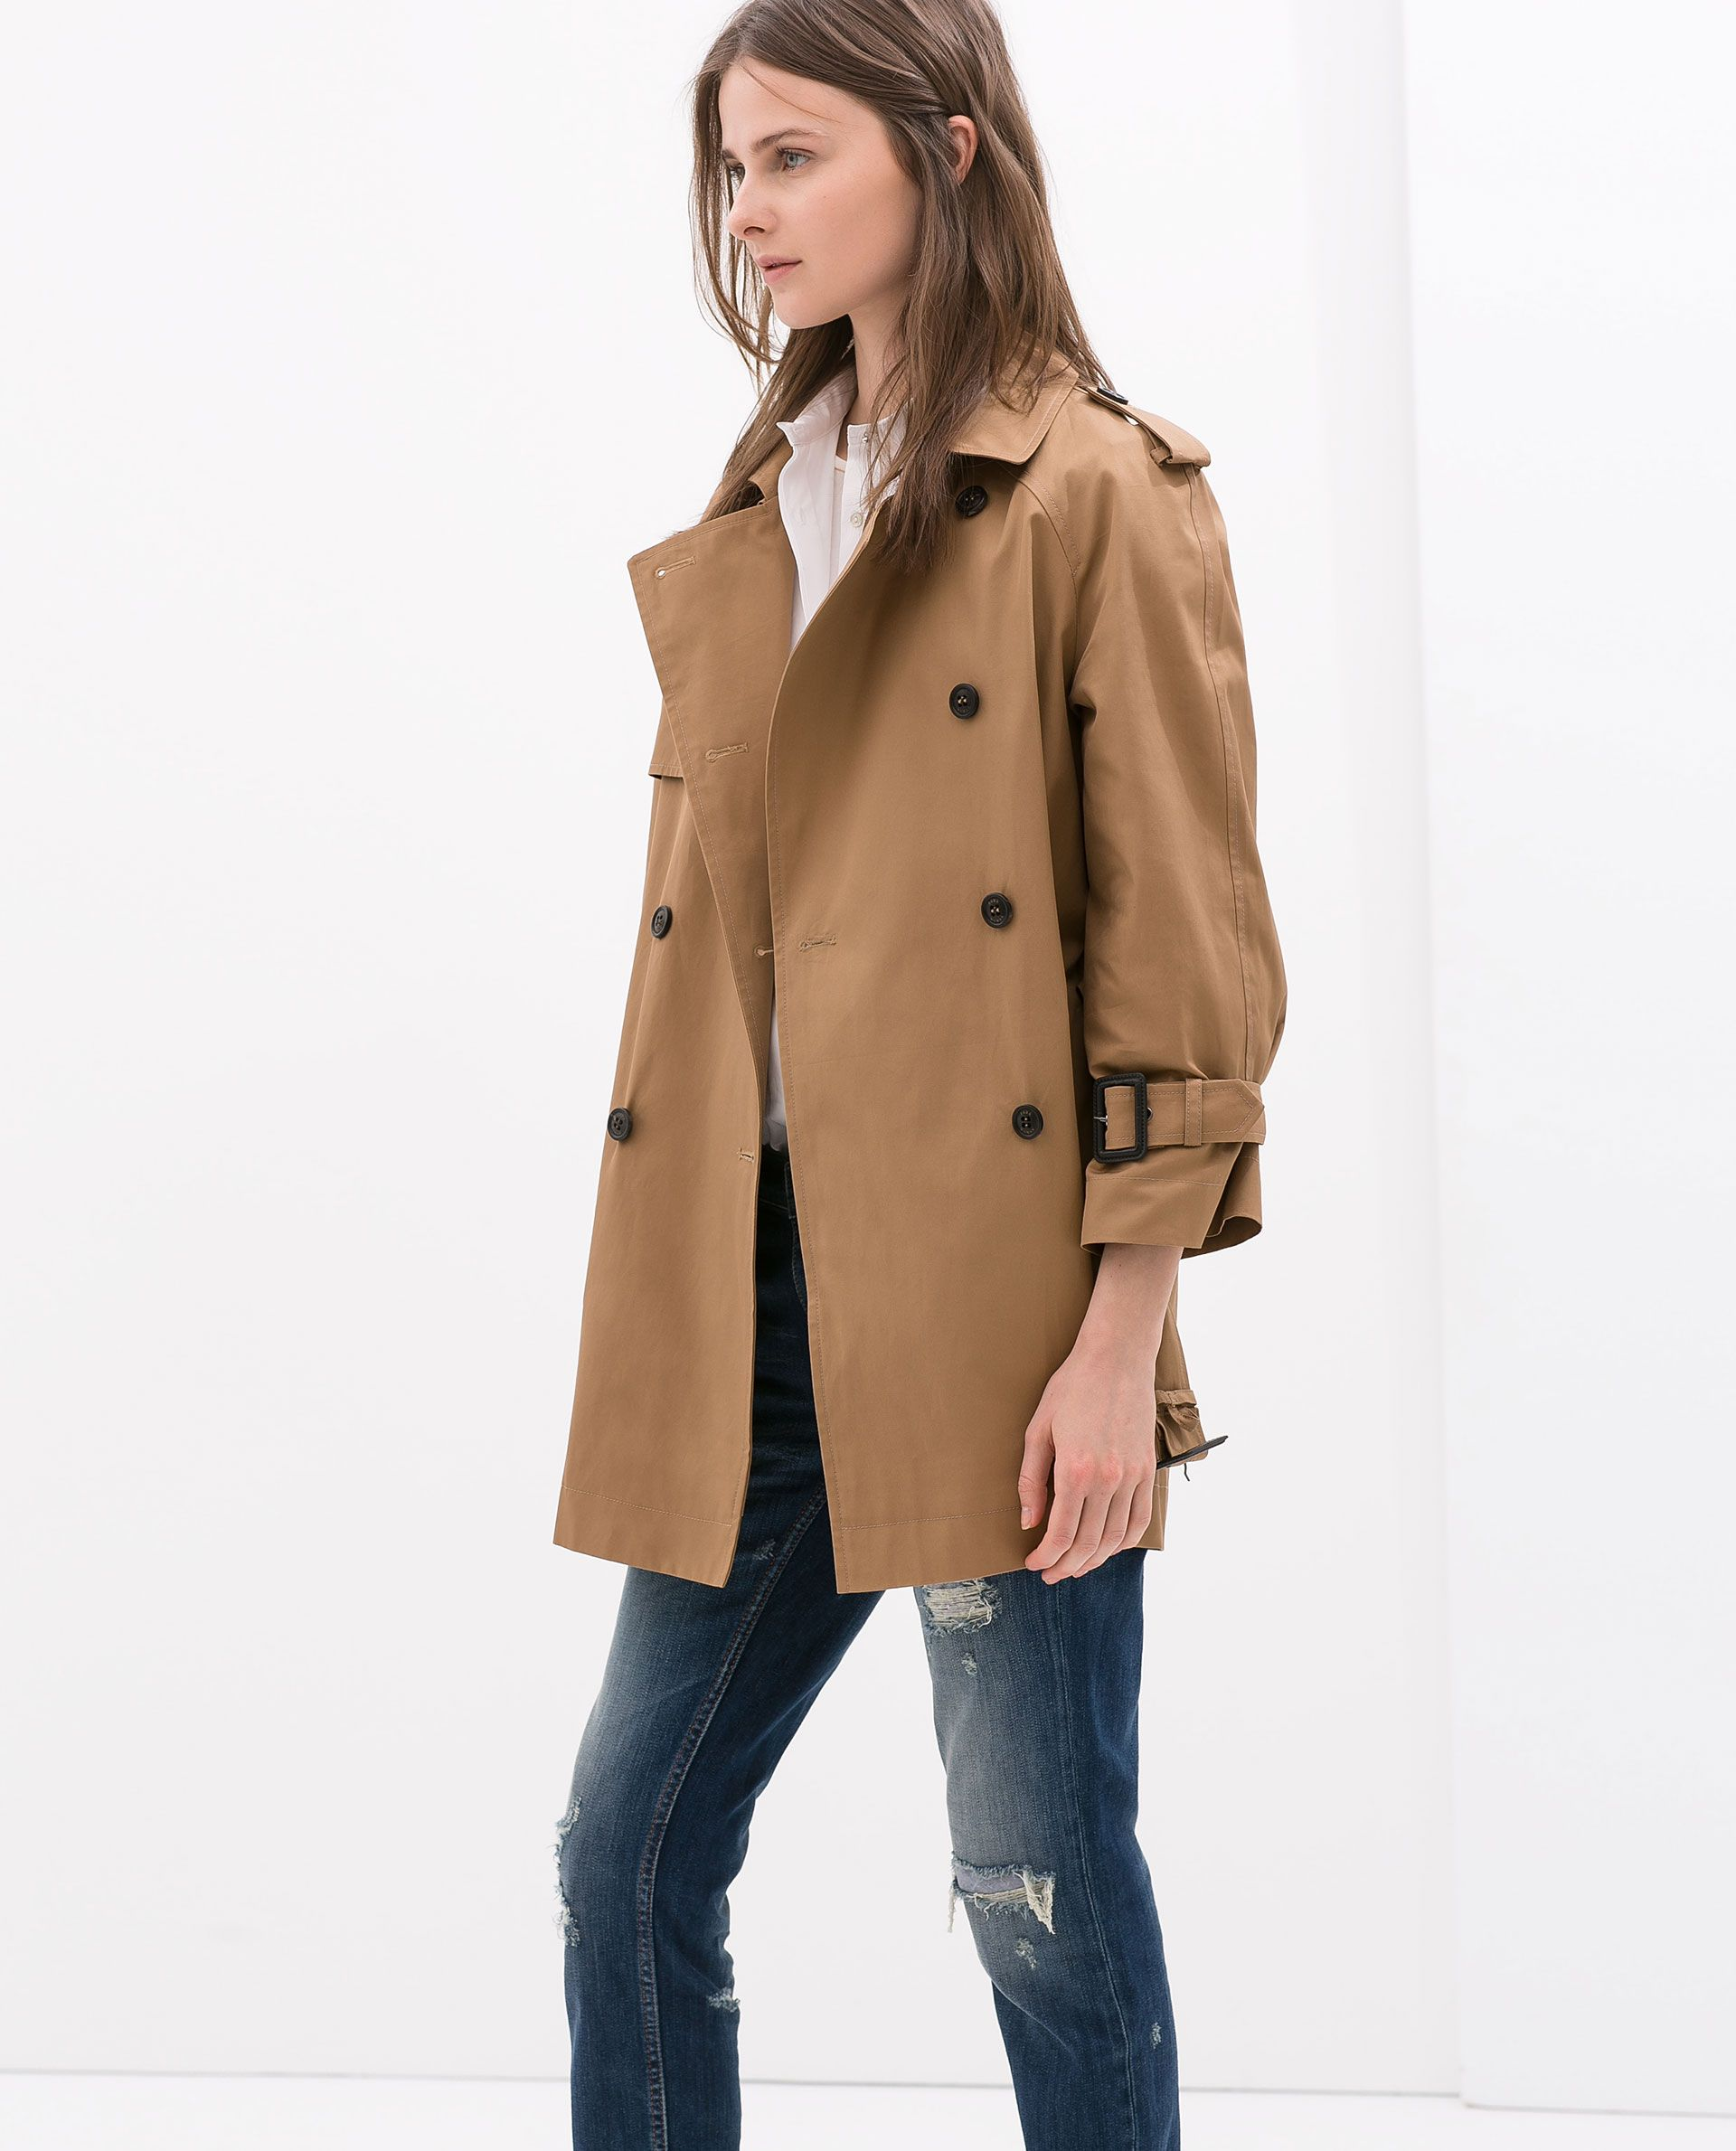 7307ad83 SHORT TRENCH COAT from Zara | Things I'm Coveting | Short trench ...